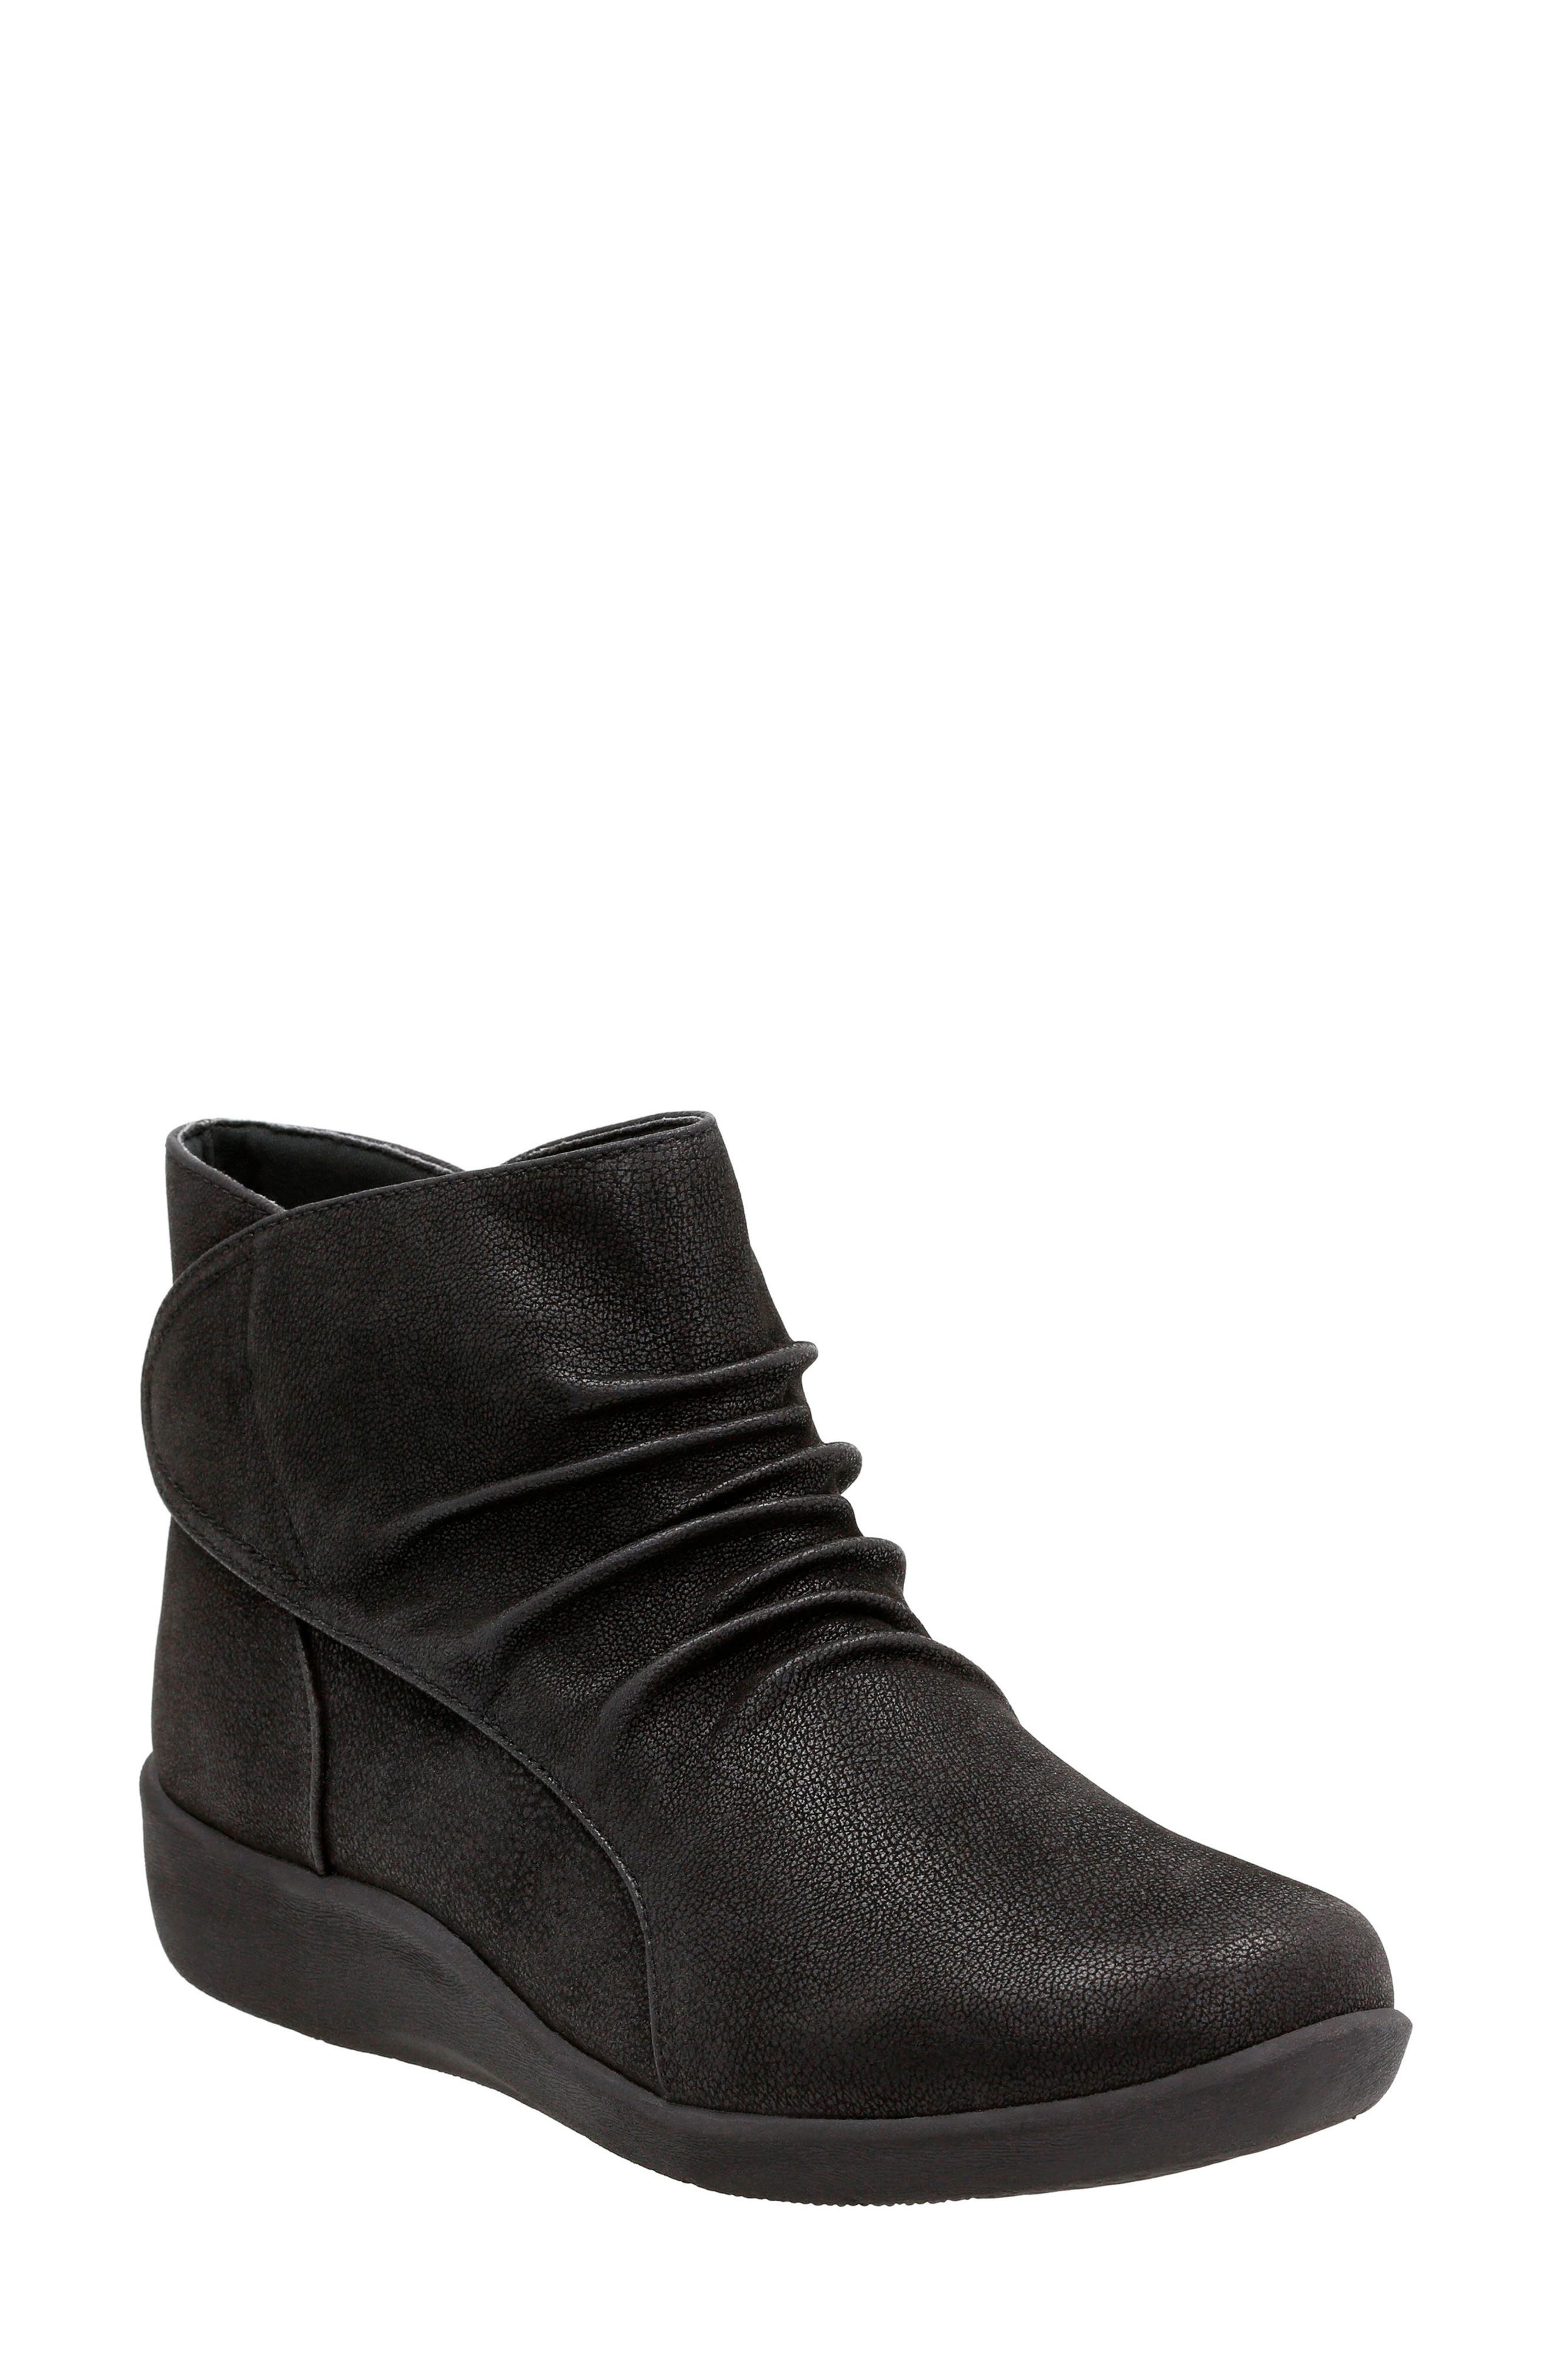 Sillian Sway Boot,                         Main,                         color, 001